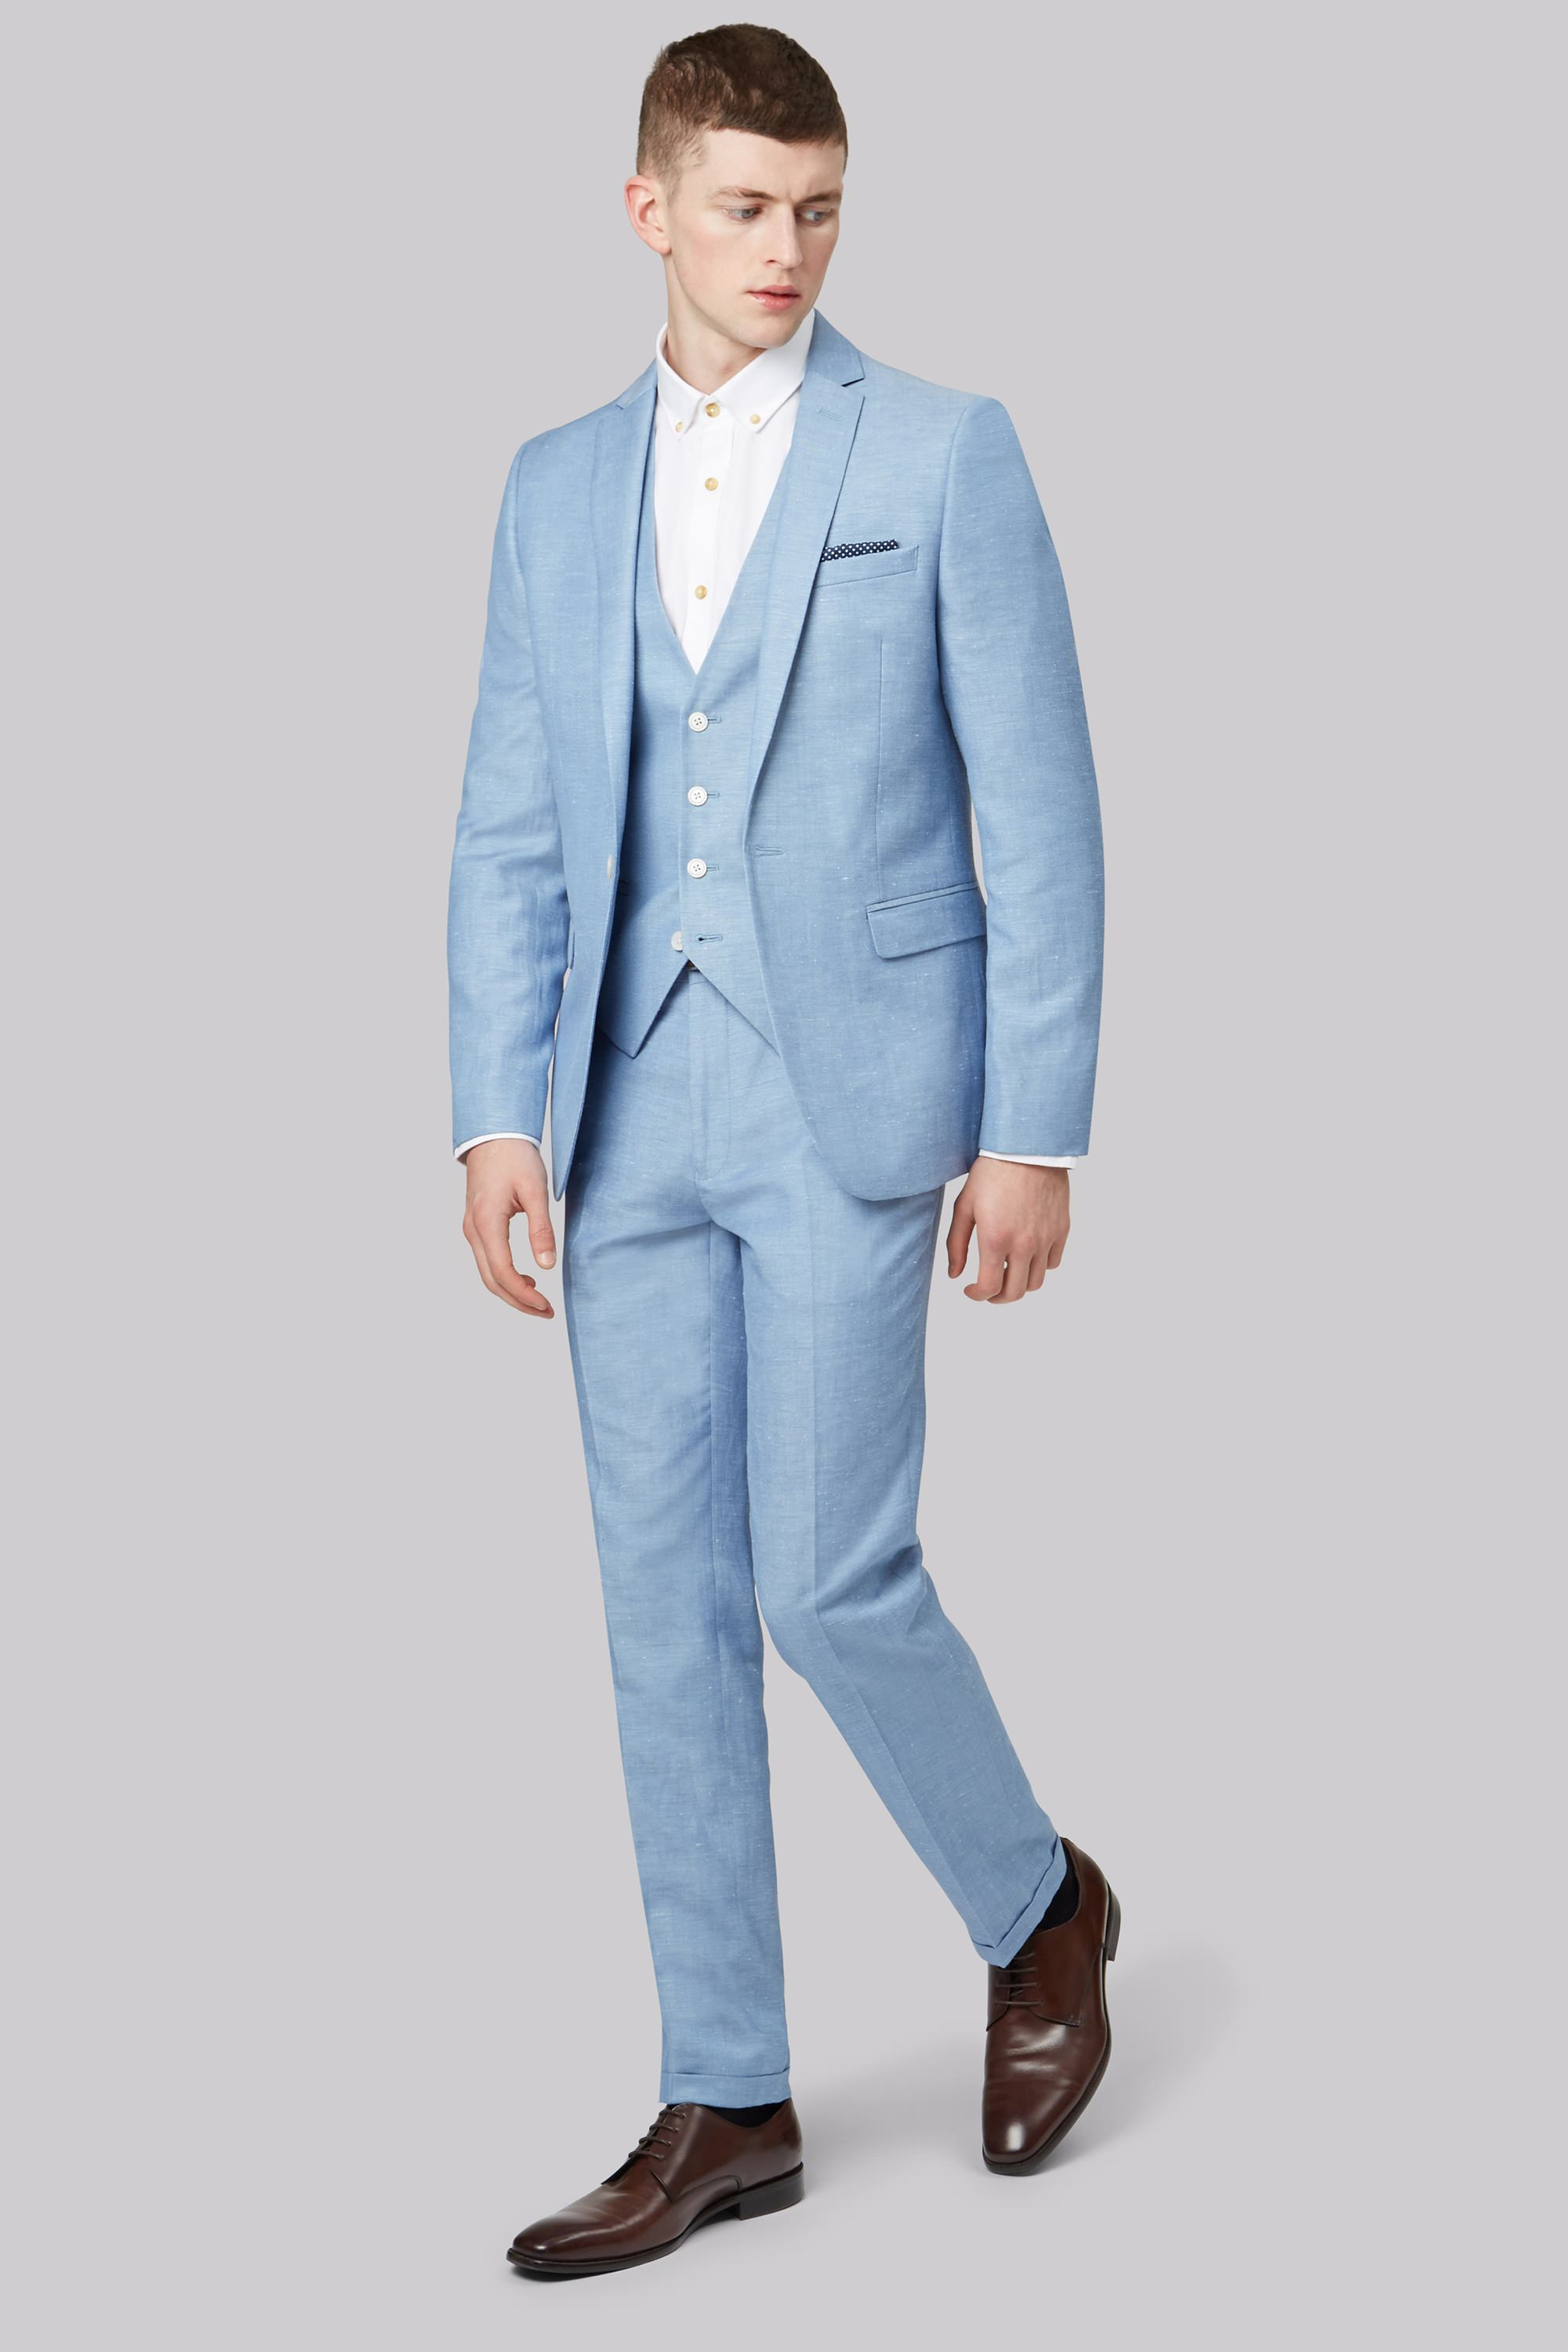 Linen Slim Fit Suit - Go Suits